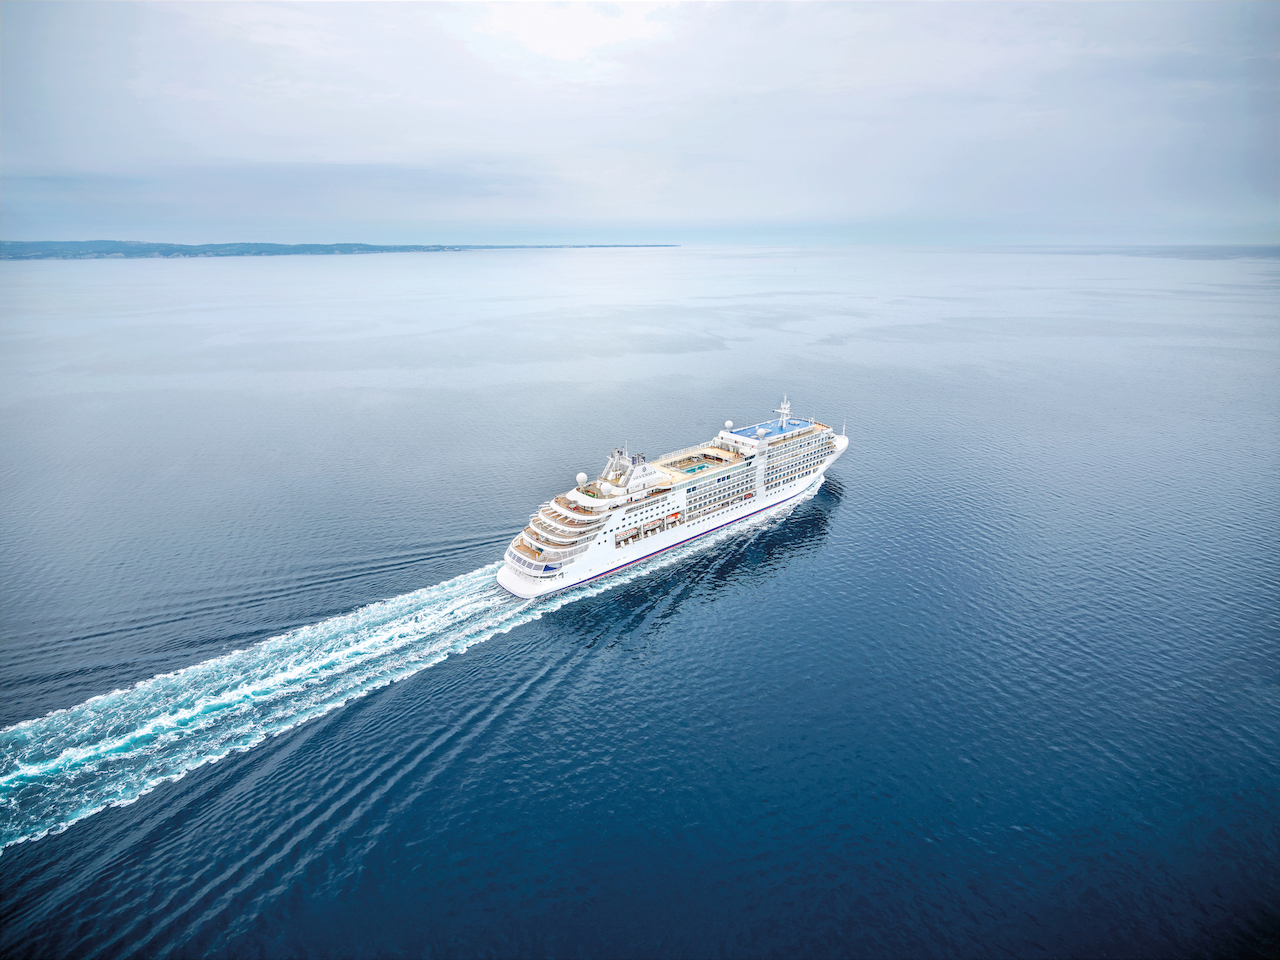 Silversea Cruises has unveiled exciting cruise itineraries in Europe and Asia in 2021 for its flagship vessel Silver Moon.